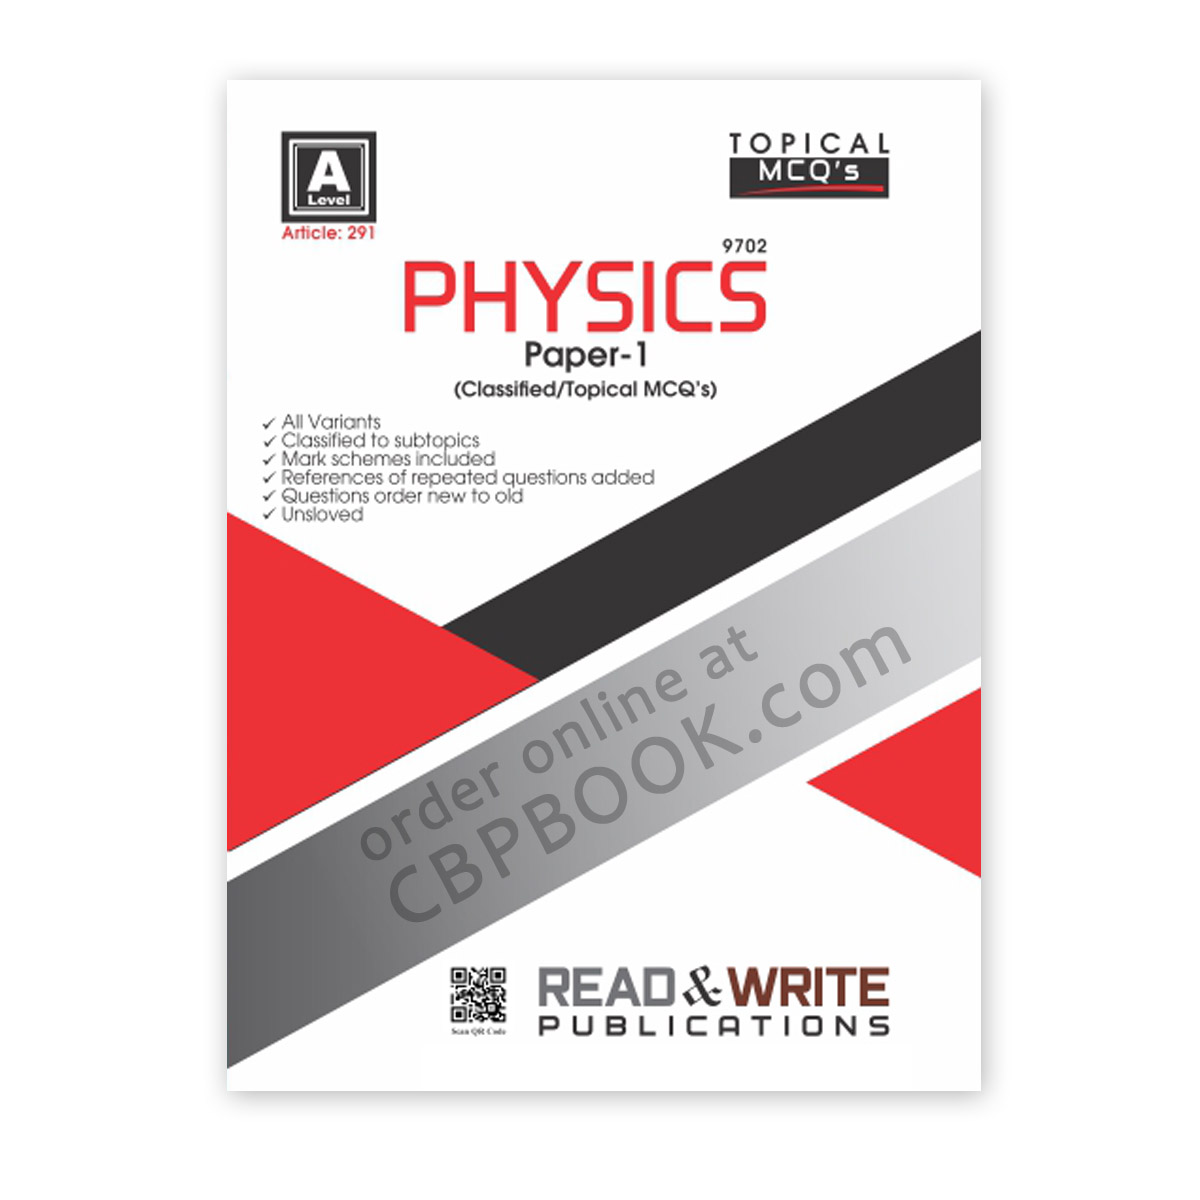 Best site for writing physics paper